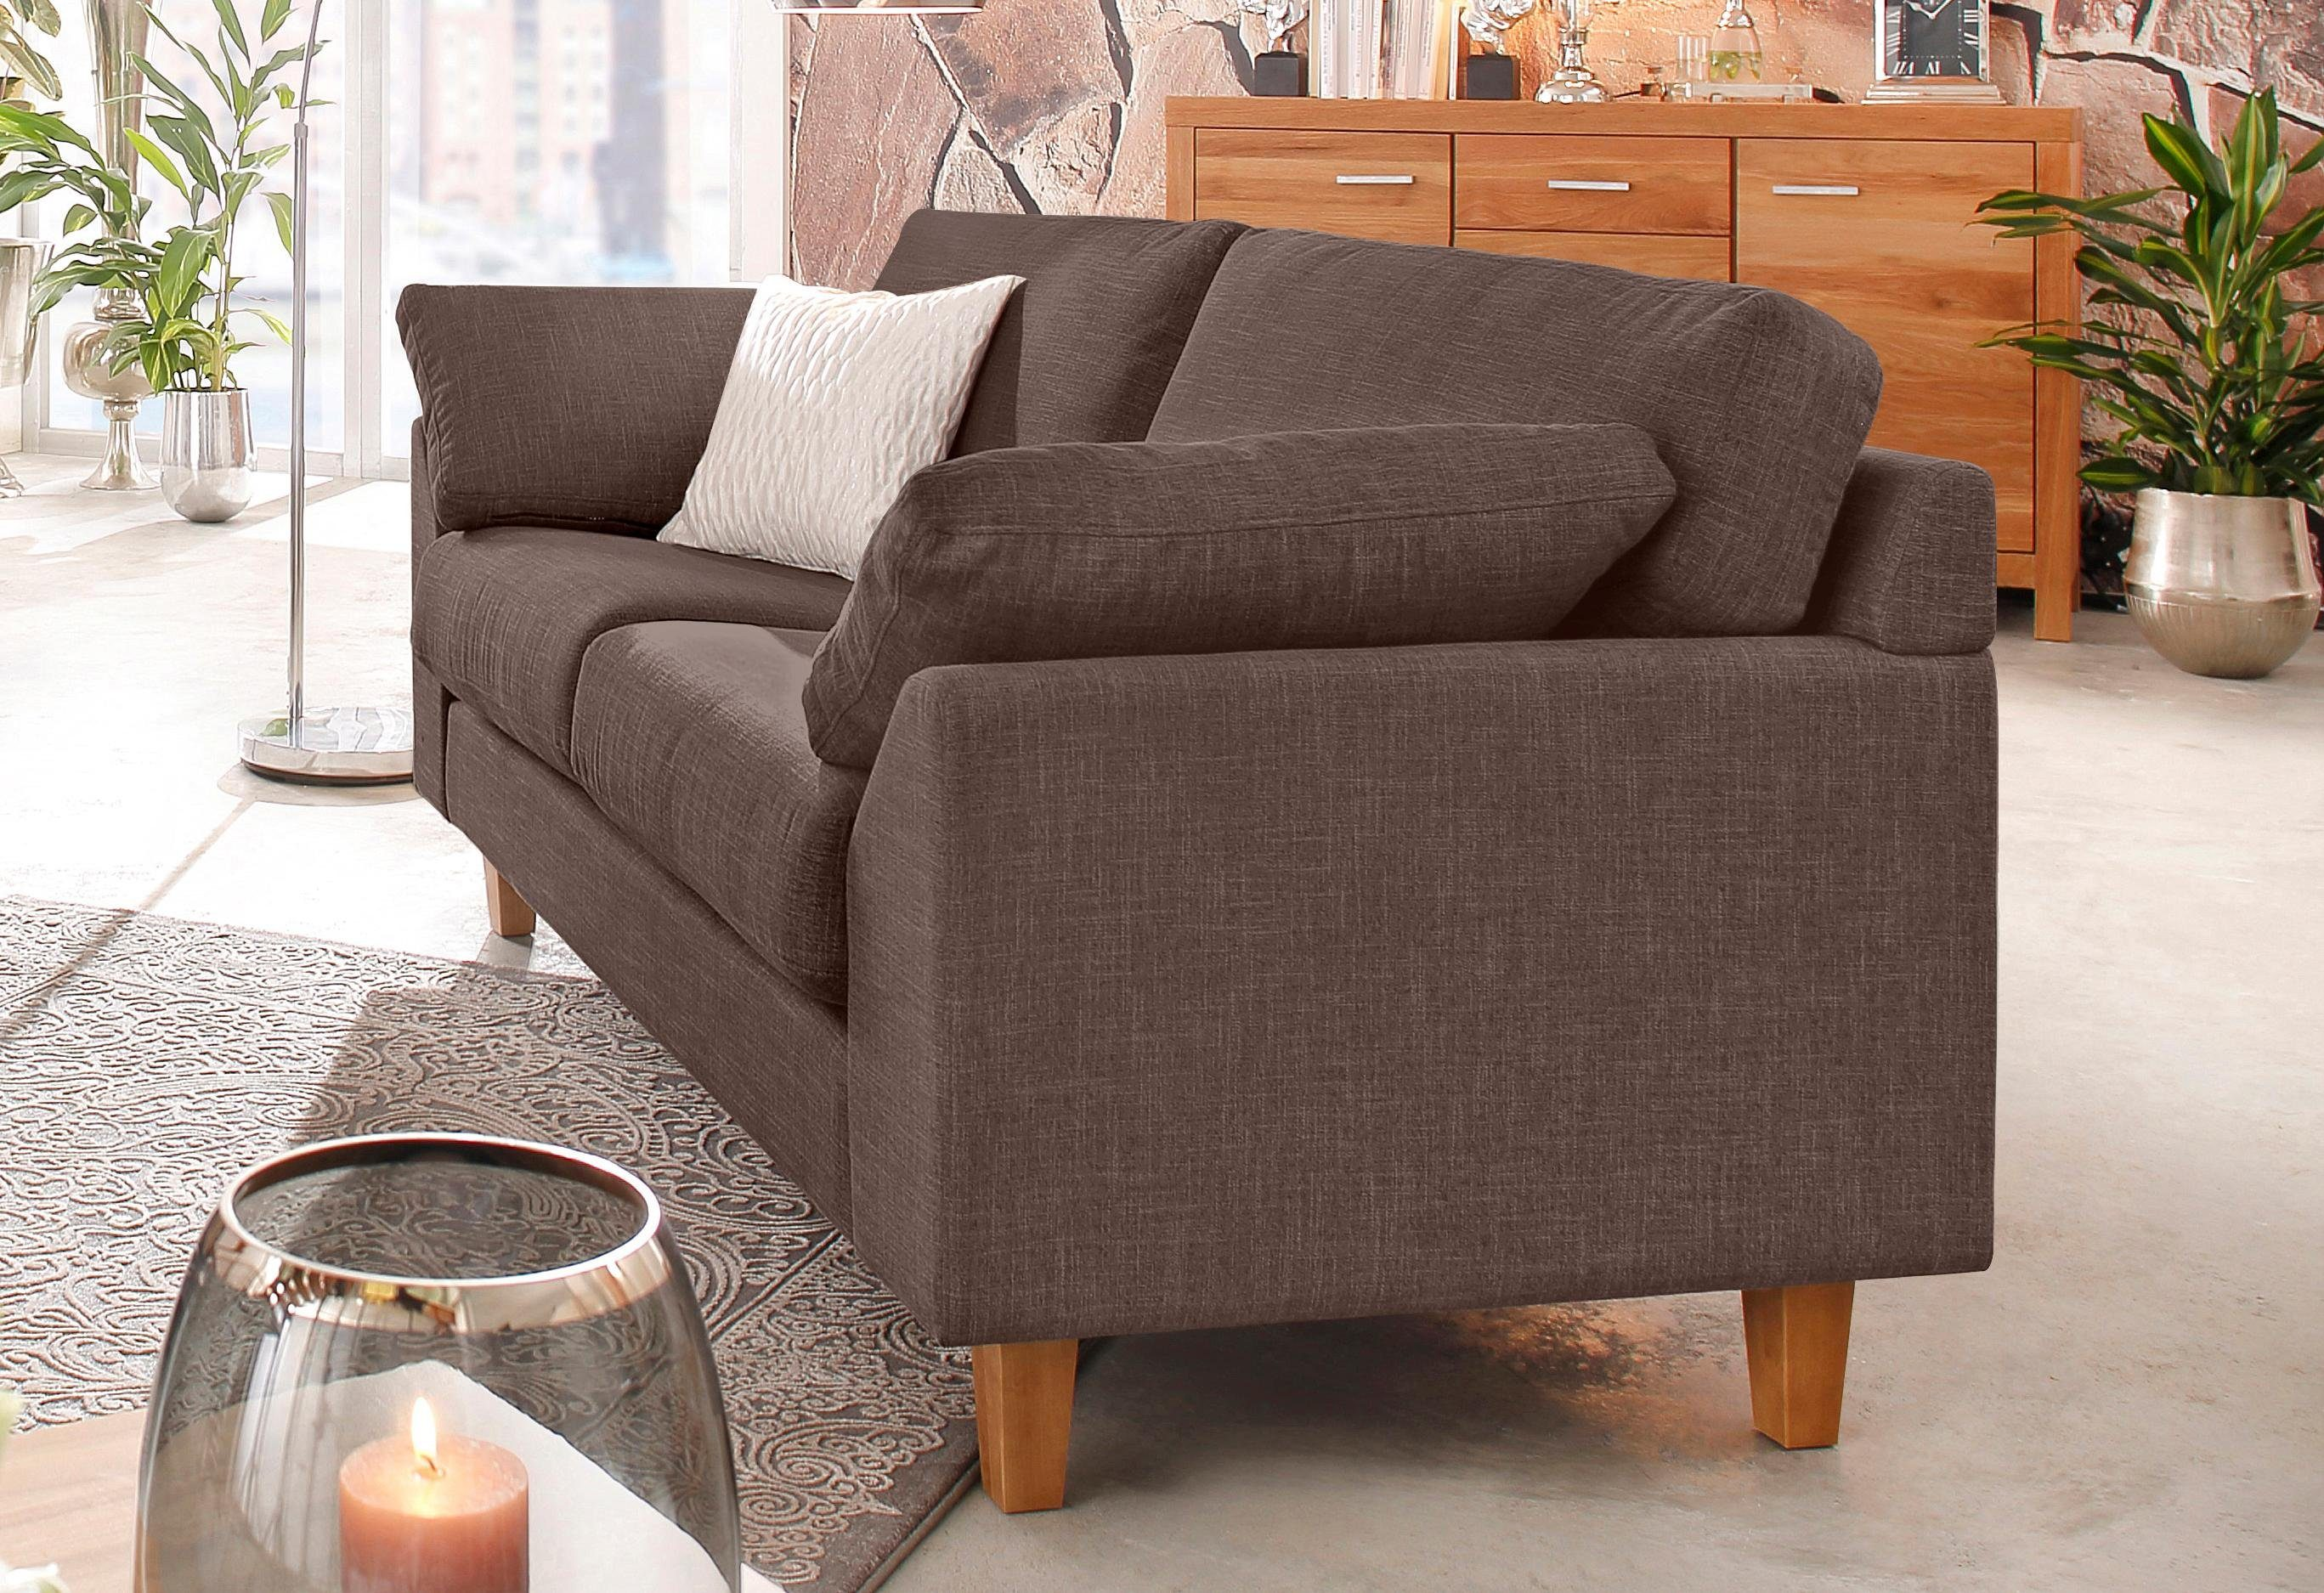 Premium Collection By Home Affaire Couchtisch Premium Collection By Home Affaire 2-sitzer »garda« Online ...